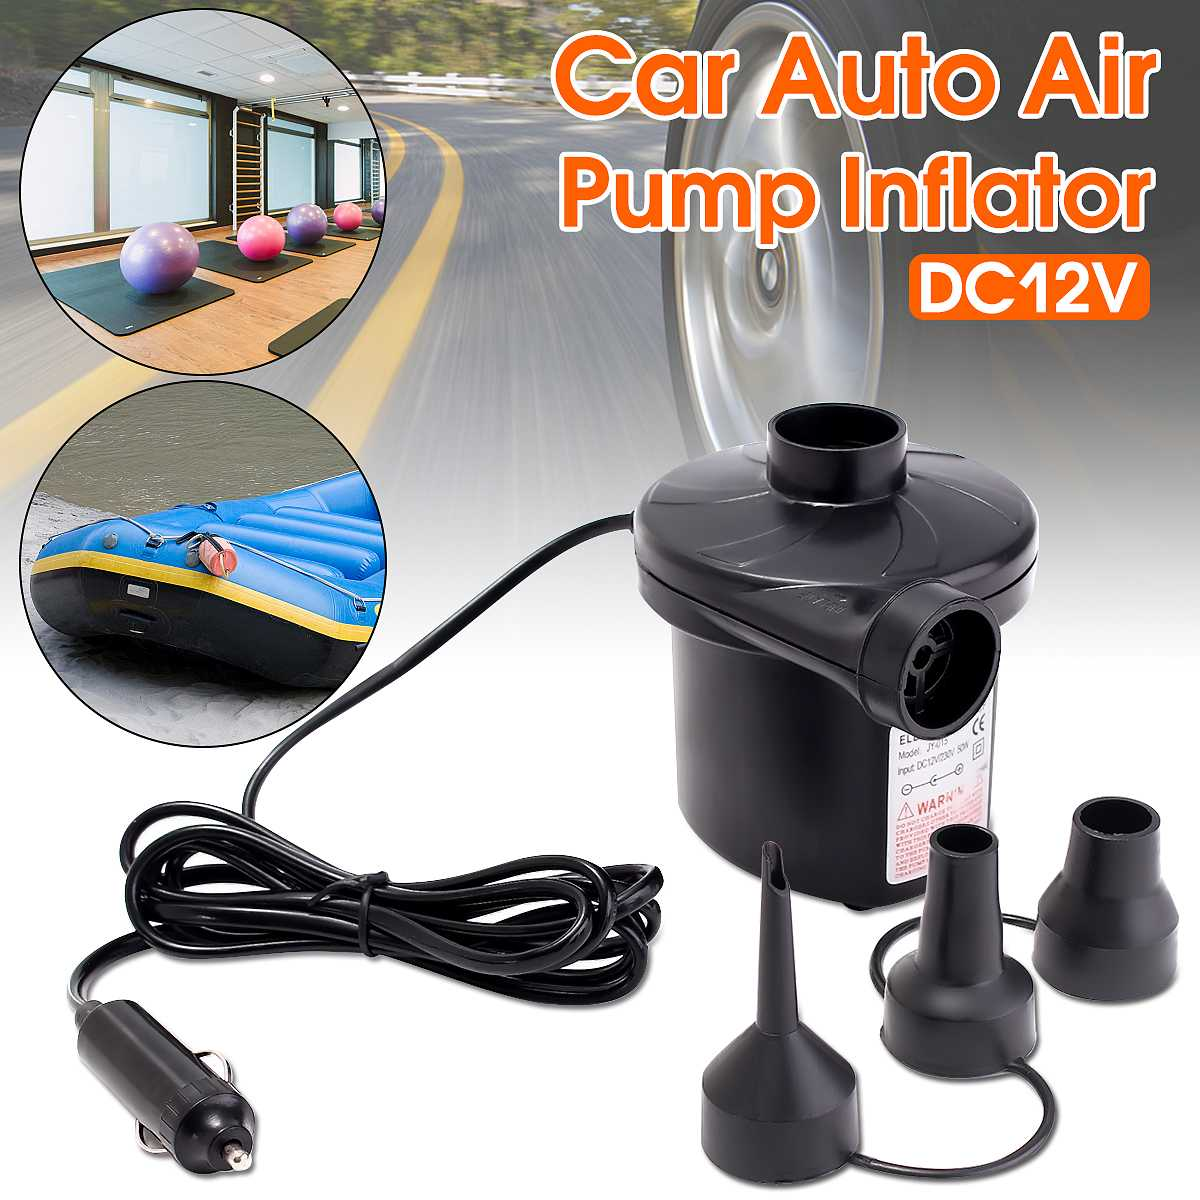 2 in 1 Electric Air Pump Inflator Inflatables Camping Bed Pool 240V 12V UK Plug